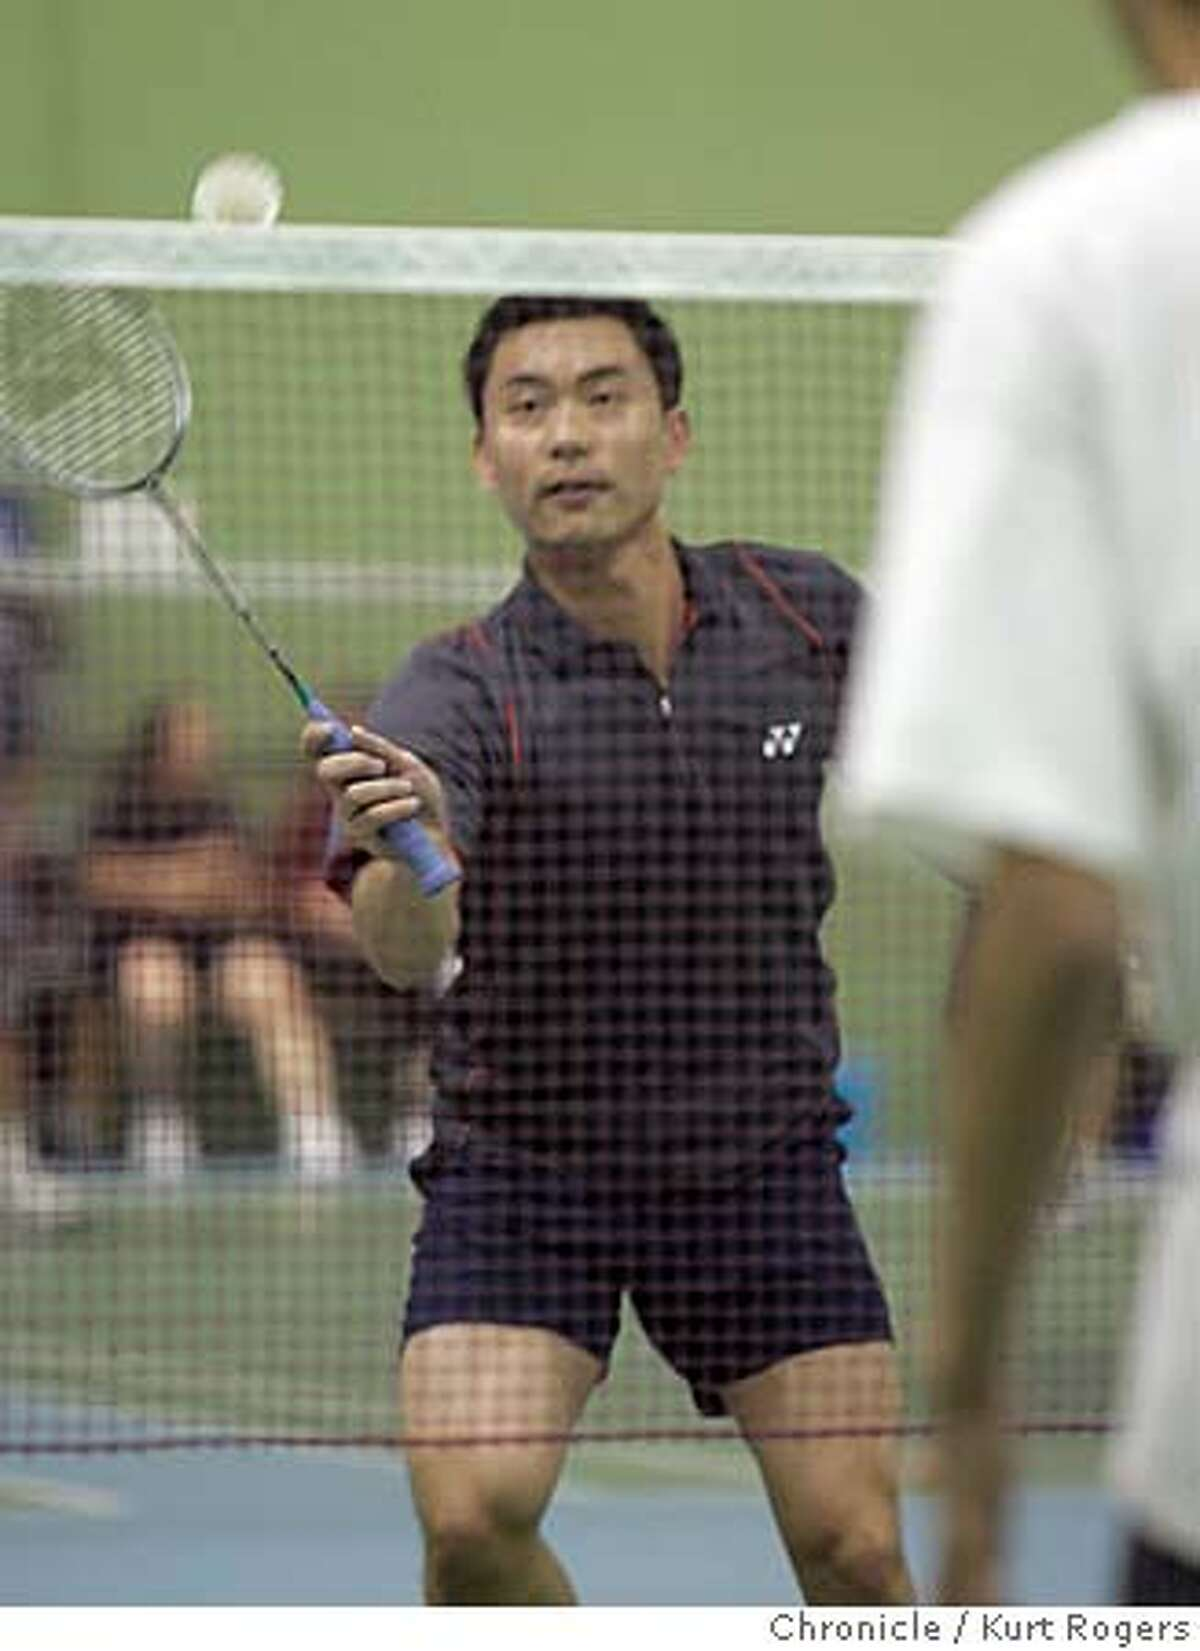 Mike Yang the owner of the club at one time was ranked #2 in the World. Golden Gate Badminton Club in Menlo Park had a waiting list to get on a court, Badminton, the backyard sport of yore, is enjoying a huge surge in popularity in the U.S, driven by waves immigration from Asia. Golden Gate Badminton Club, owner Mike Yang. Kurt Rogers MENLO PARK SFC The Chronicle BADMINTON_00516_kr.JPG MANDATORY CREDIT FOR PHOTOG AND SF CHRONICLE/ -MAGS OUT